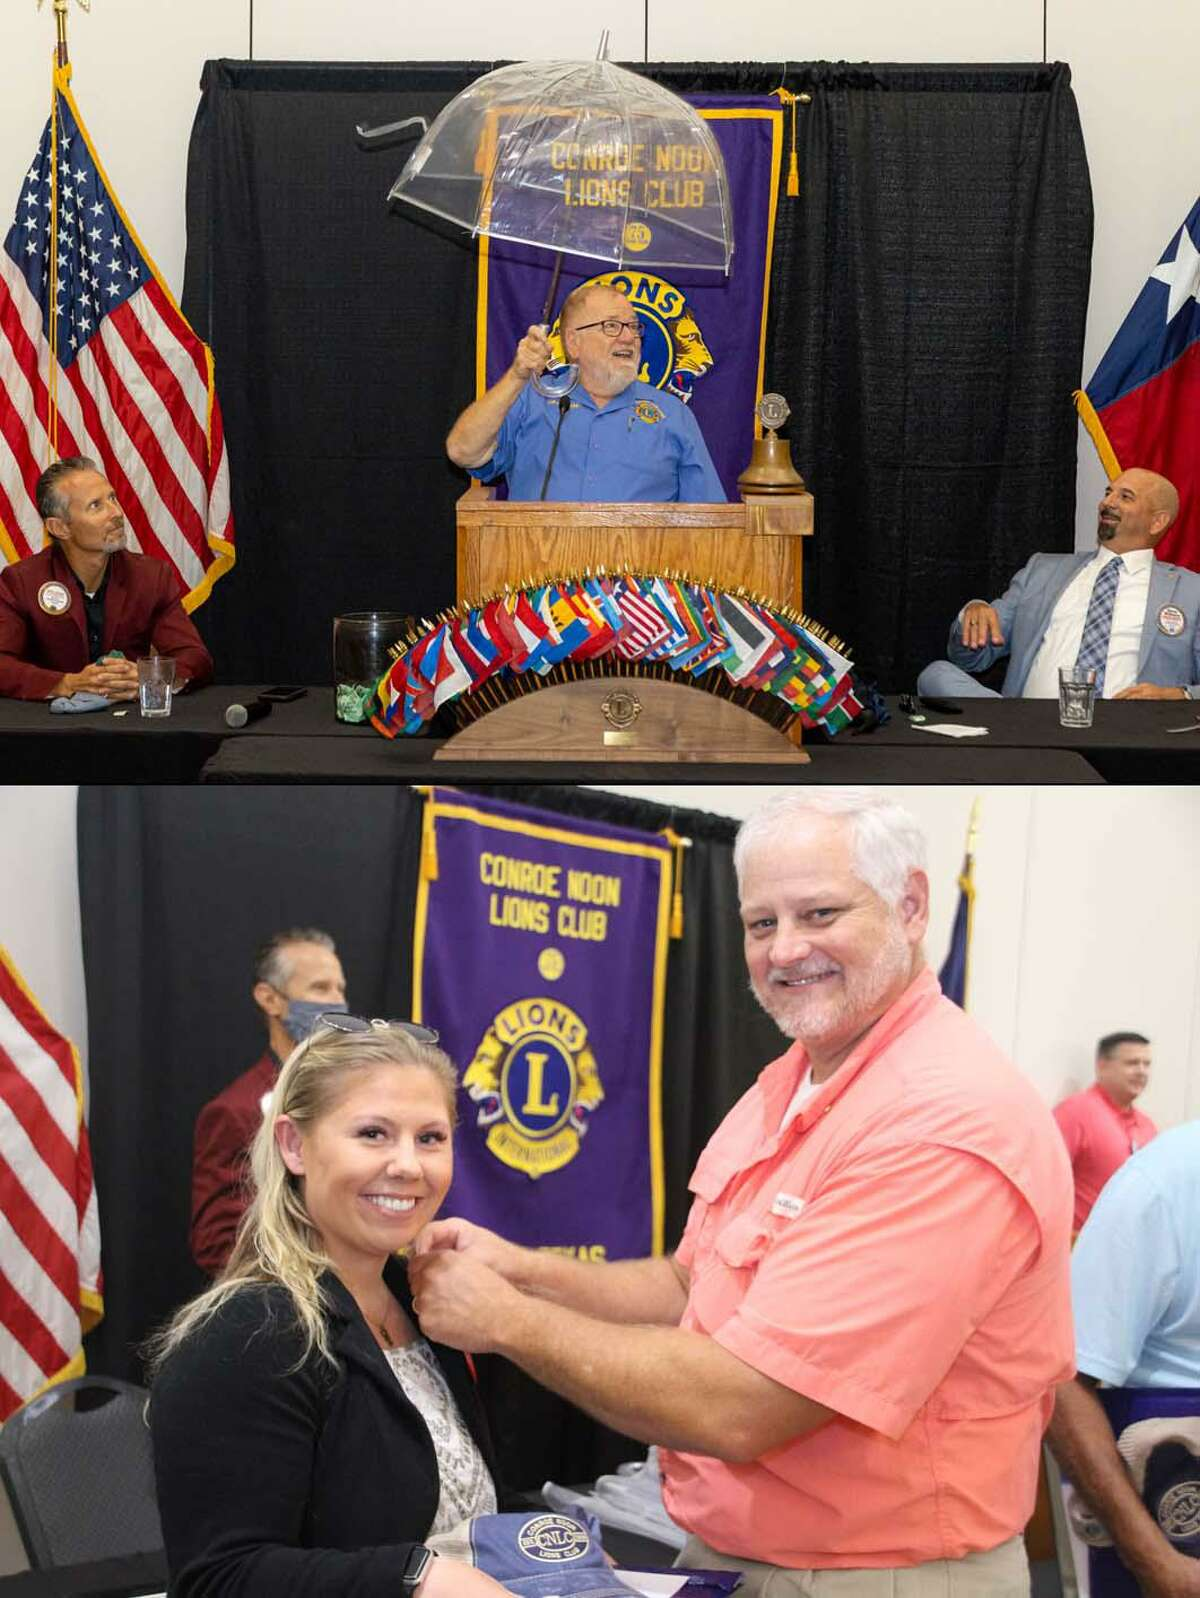 It was raining napkins last week at the Conroe Noon Lions Club - New Member Induction ceremony. Pictured-top (center) Master of Ceremonies Past District Governor Rick Reynolds used an umbrella to avoid flying napkins as Program Chair Mike Sproba (left) and Club President Steve Williams (right) look on. Bottom - Tail Twister Scott Perry (right) pins a Lions lapel pin on his newest member Hannah Medley (left) during the ceremony.